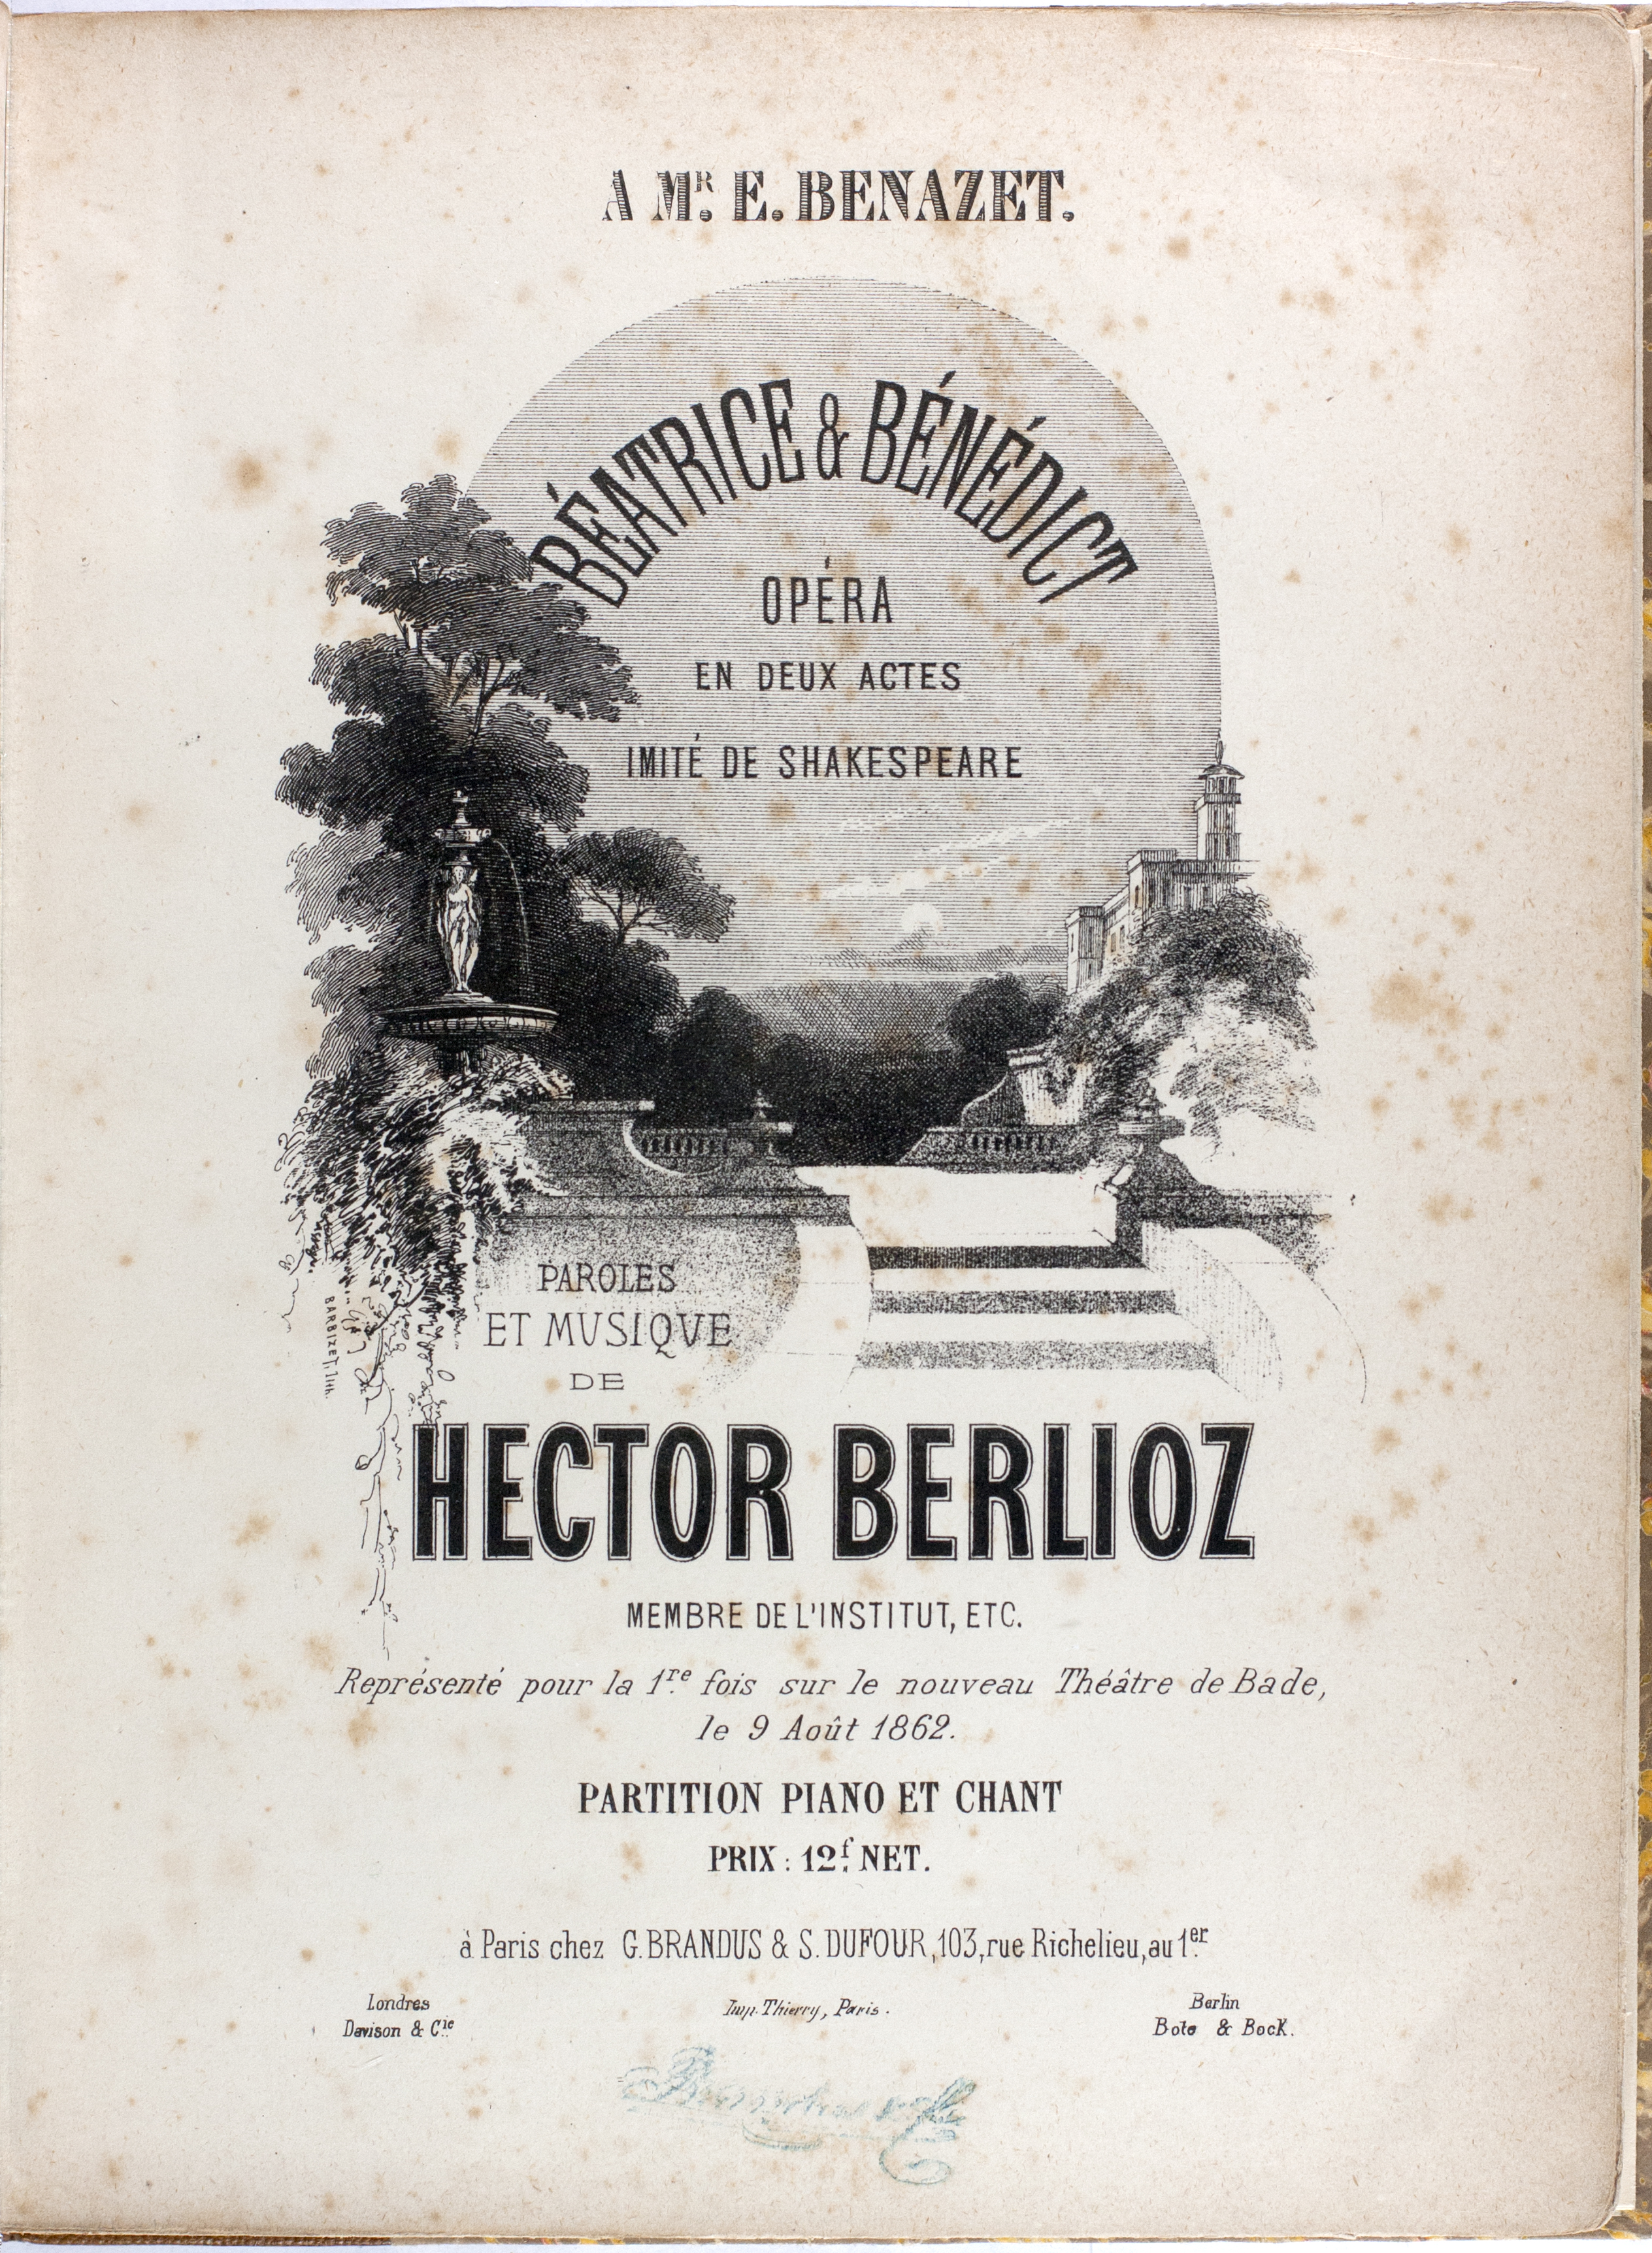 First-edition opera vocal score on display at Seattle Opera during Beatrice and Benedict